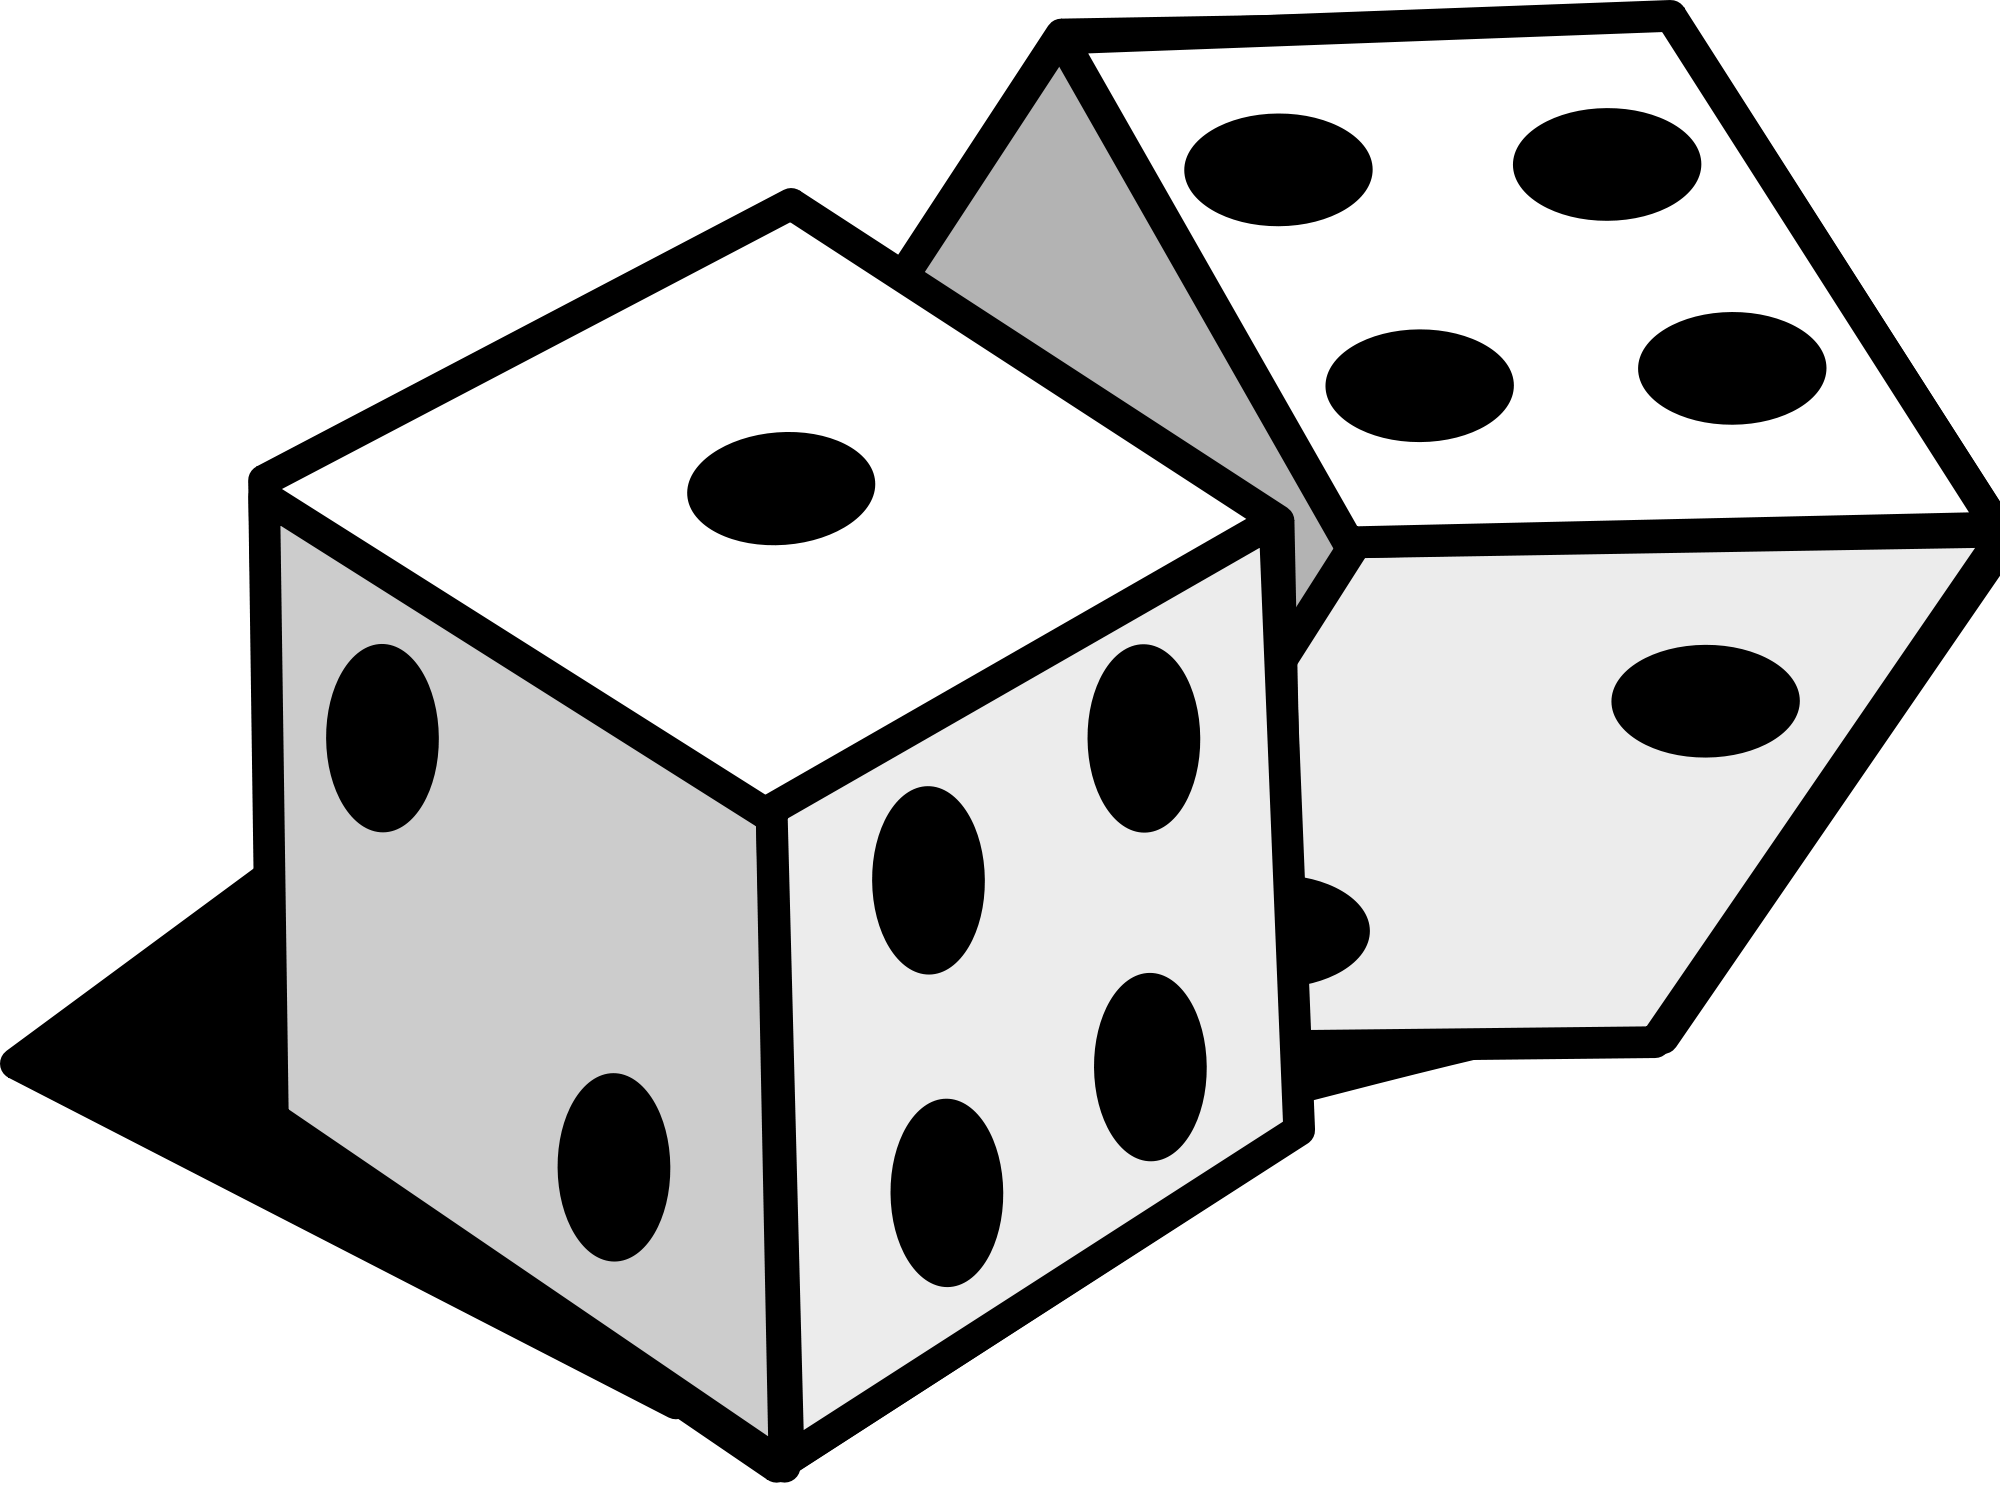 Dice Clipart File Frames Illustrations Hd Images Photo Throughout Dice  Clipart